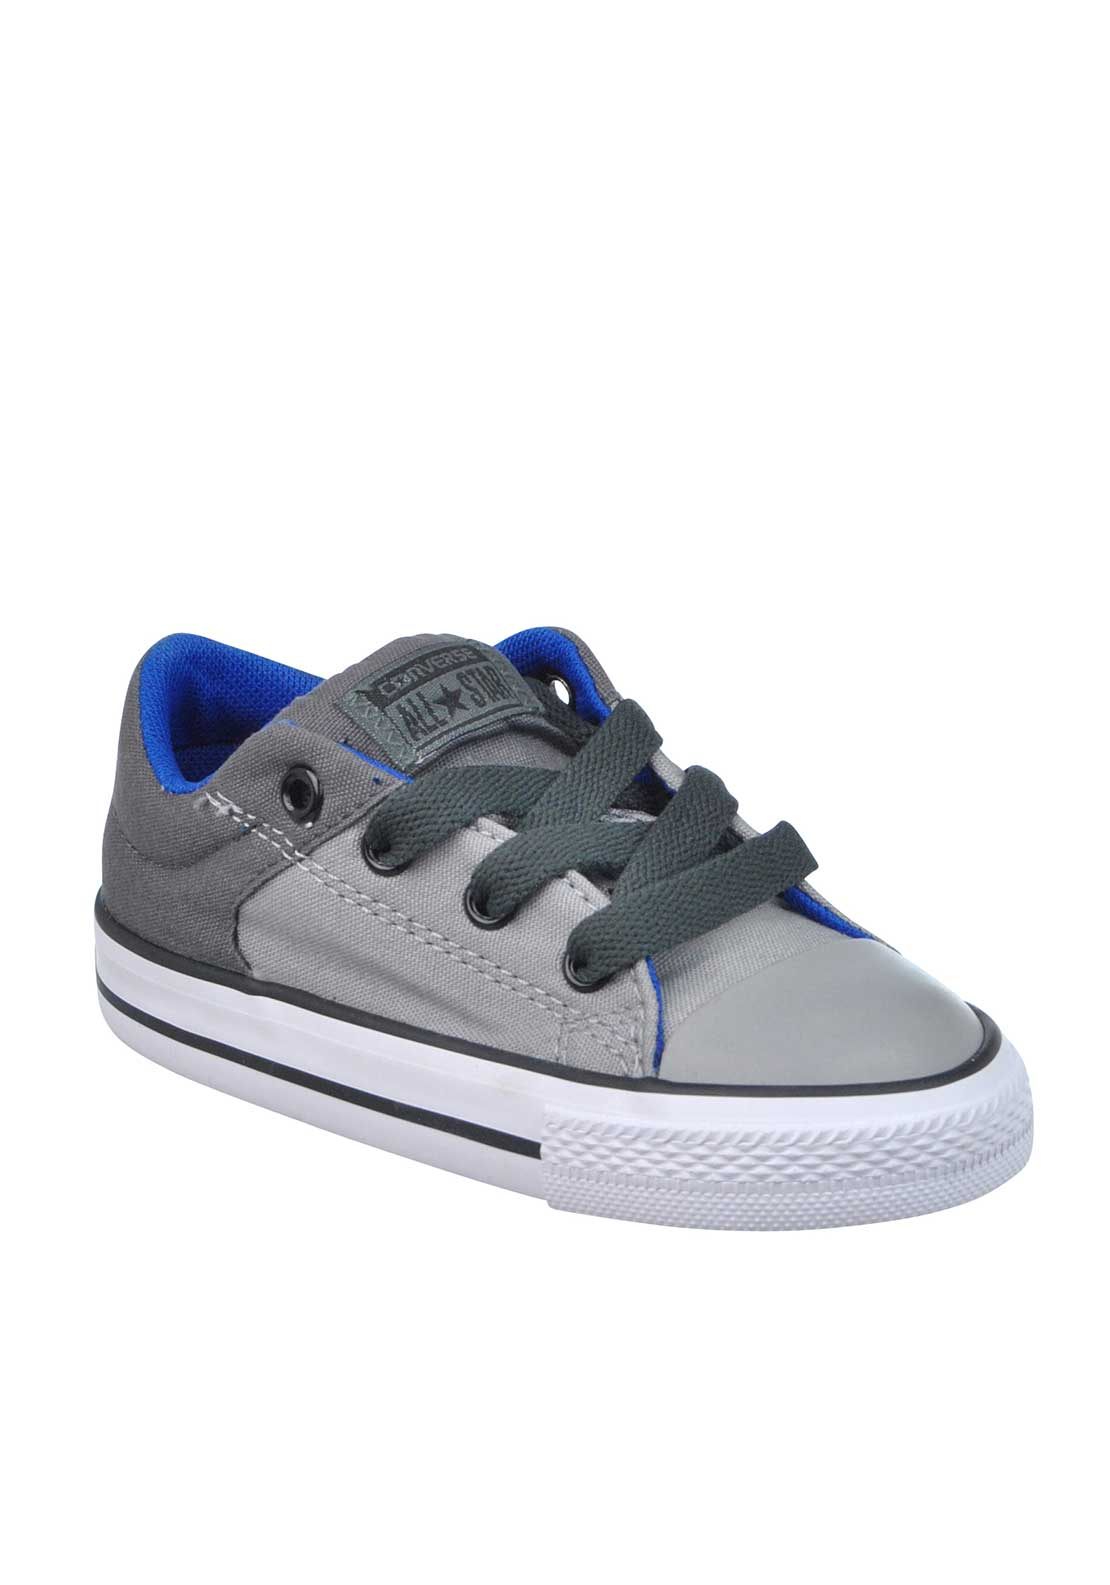 Converse Baby Boys All Star Canvas Trainers, Grey